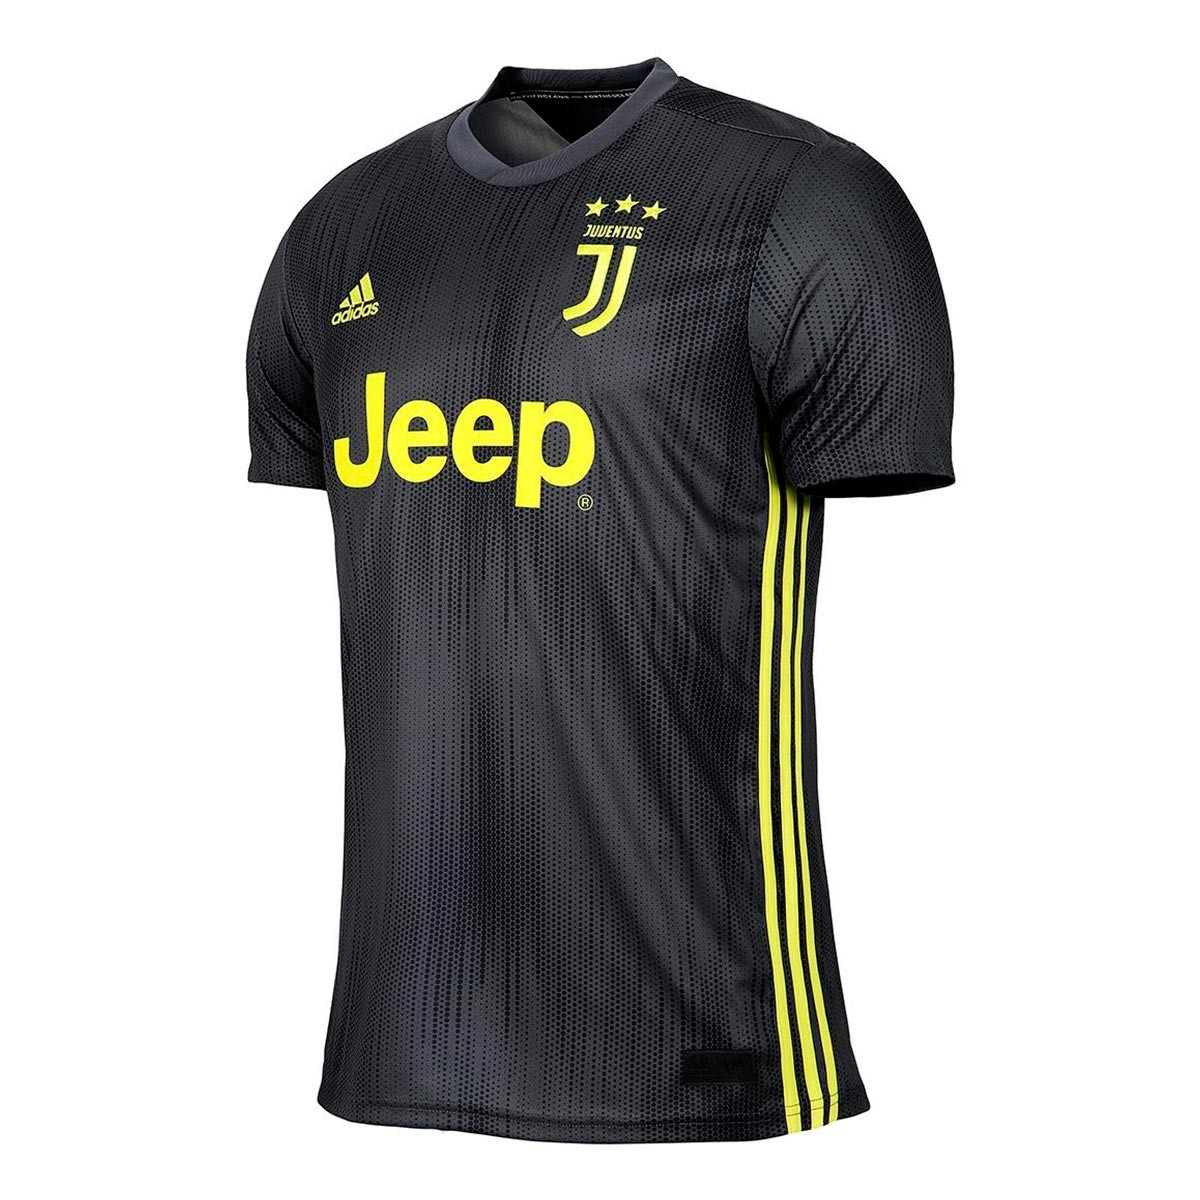 sobre Construir sobre Funeral  Jersey adidas Juventus 2018-2019 Third Carbon-Shock yellow - Football store  Fútbol Emotion